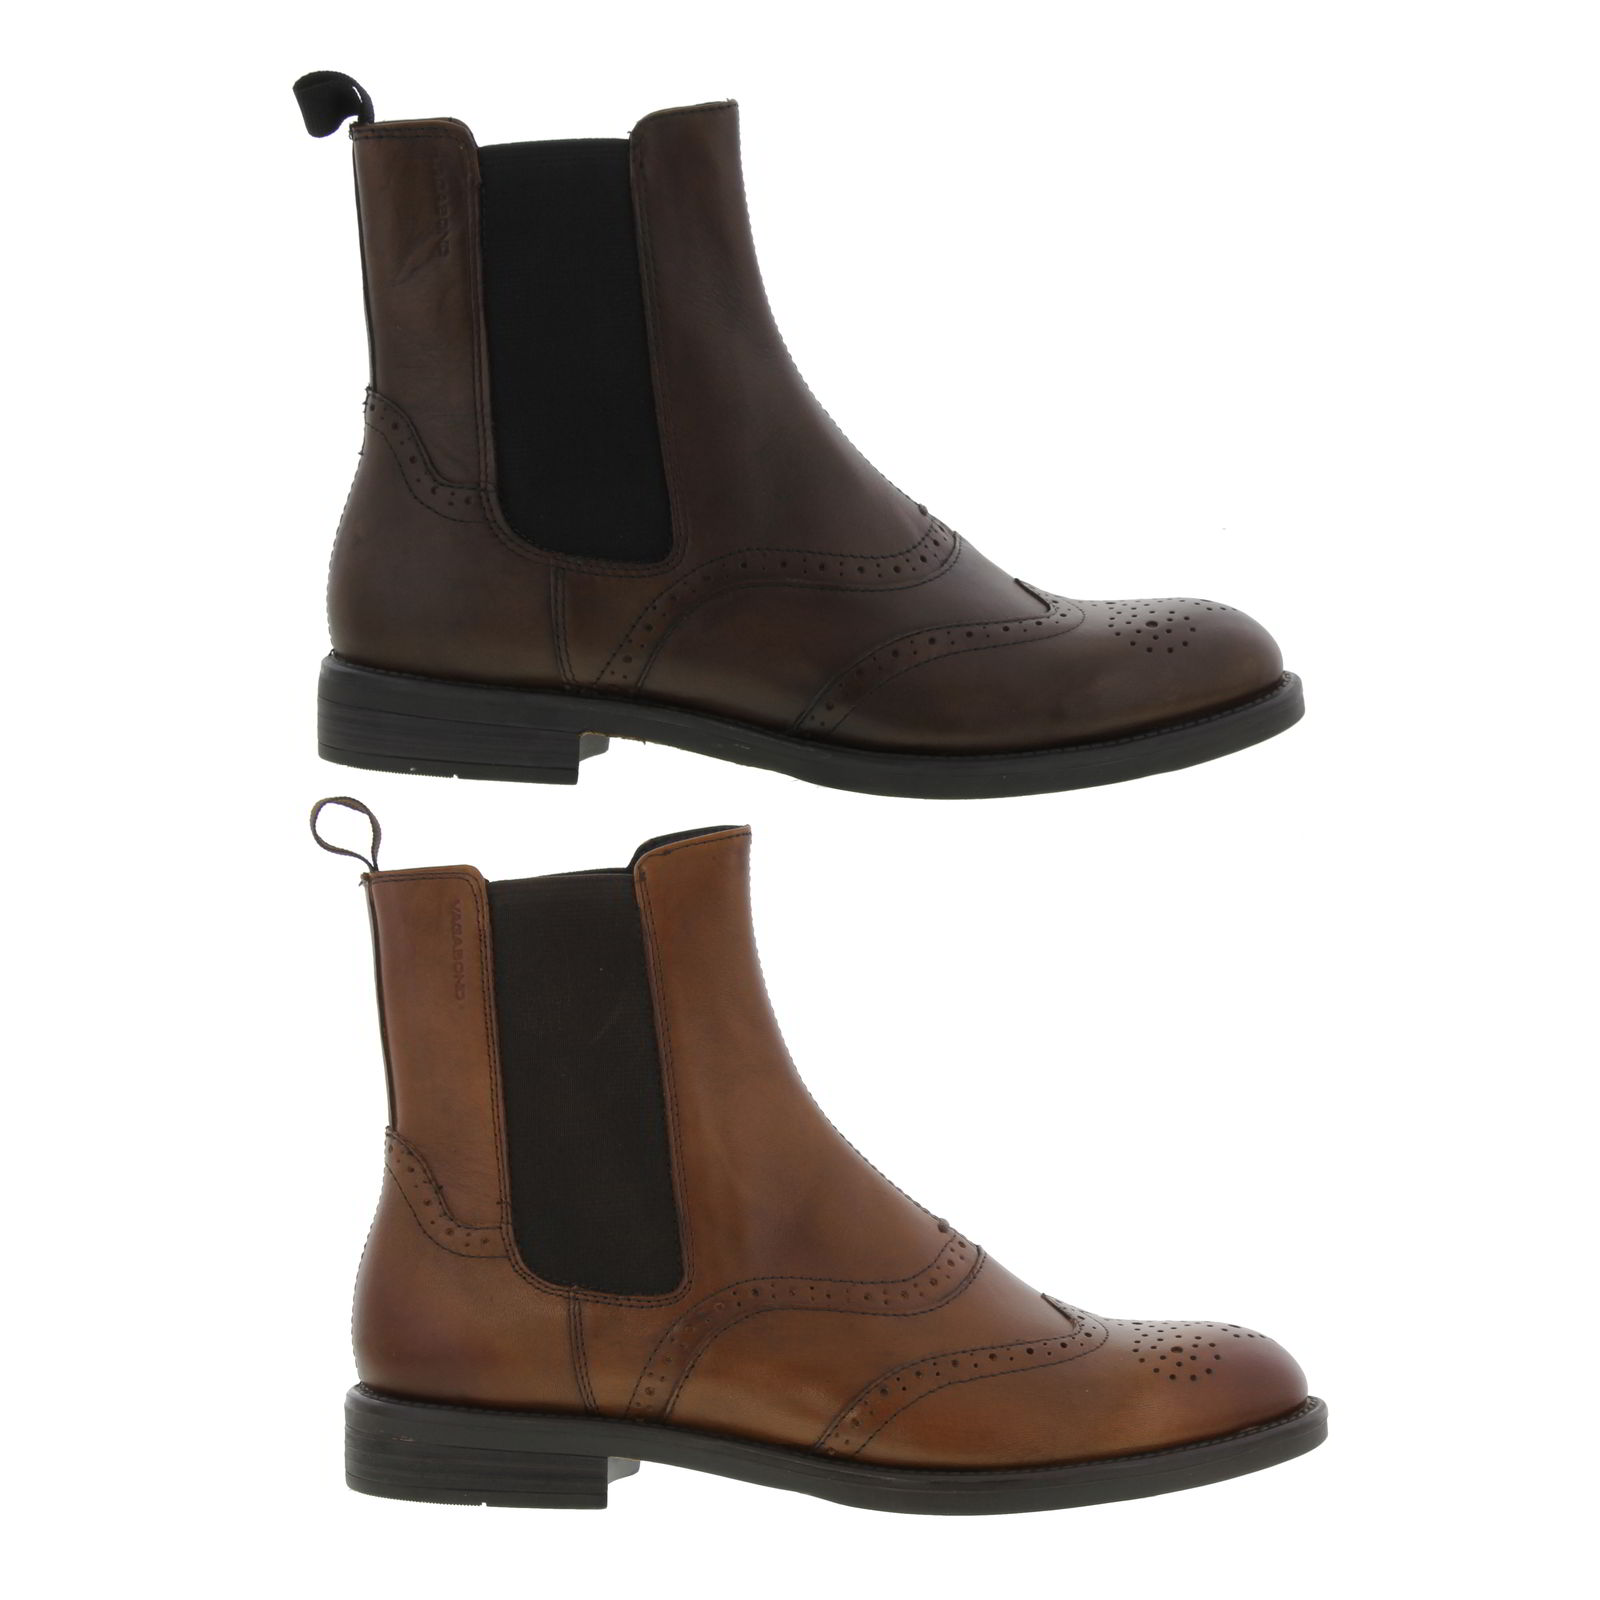 Vagabond Amina Womens Brown Leather Brogues Chelsea Boots Size UK 4 ... 990ffd39e4